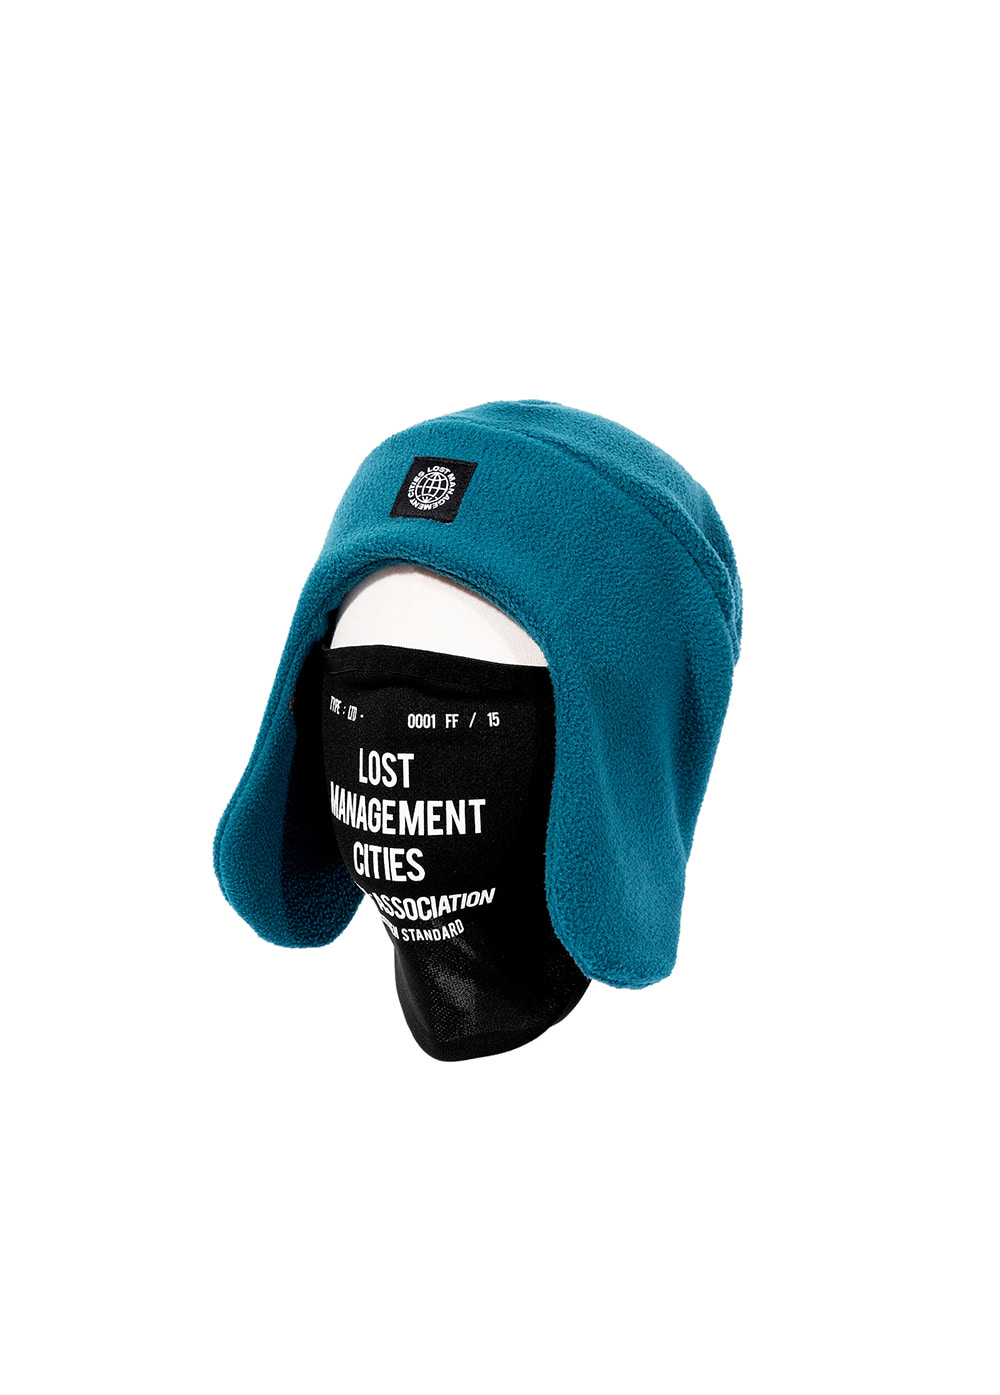 LMC MASK FLEECE EARFLAP BEANIE teal green